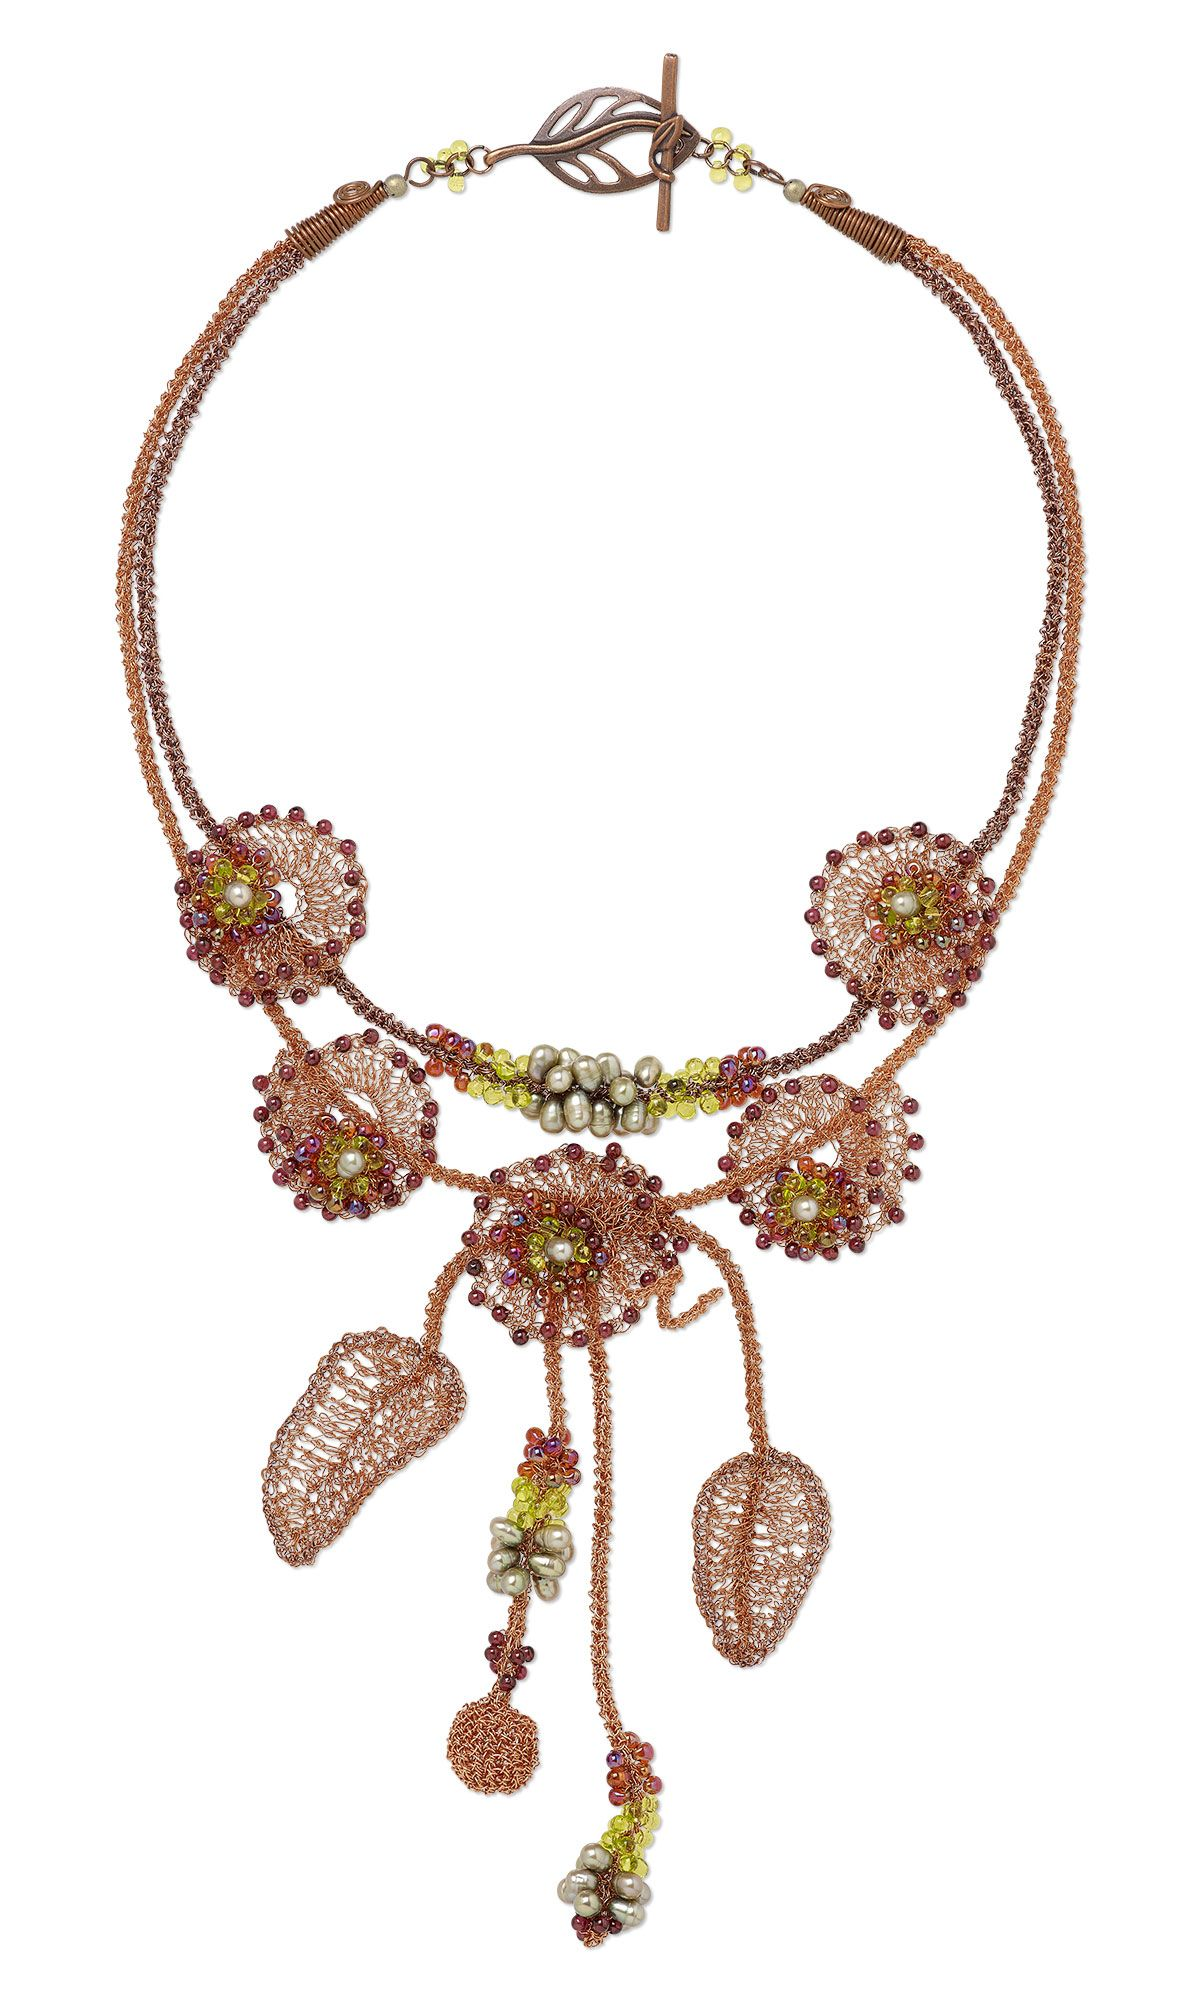 Jewelry Design - Double-Strand Necklace with Wirework, Seed Beads ...